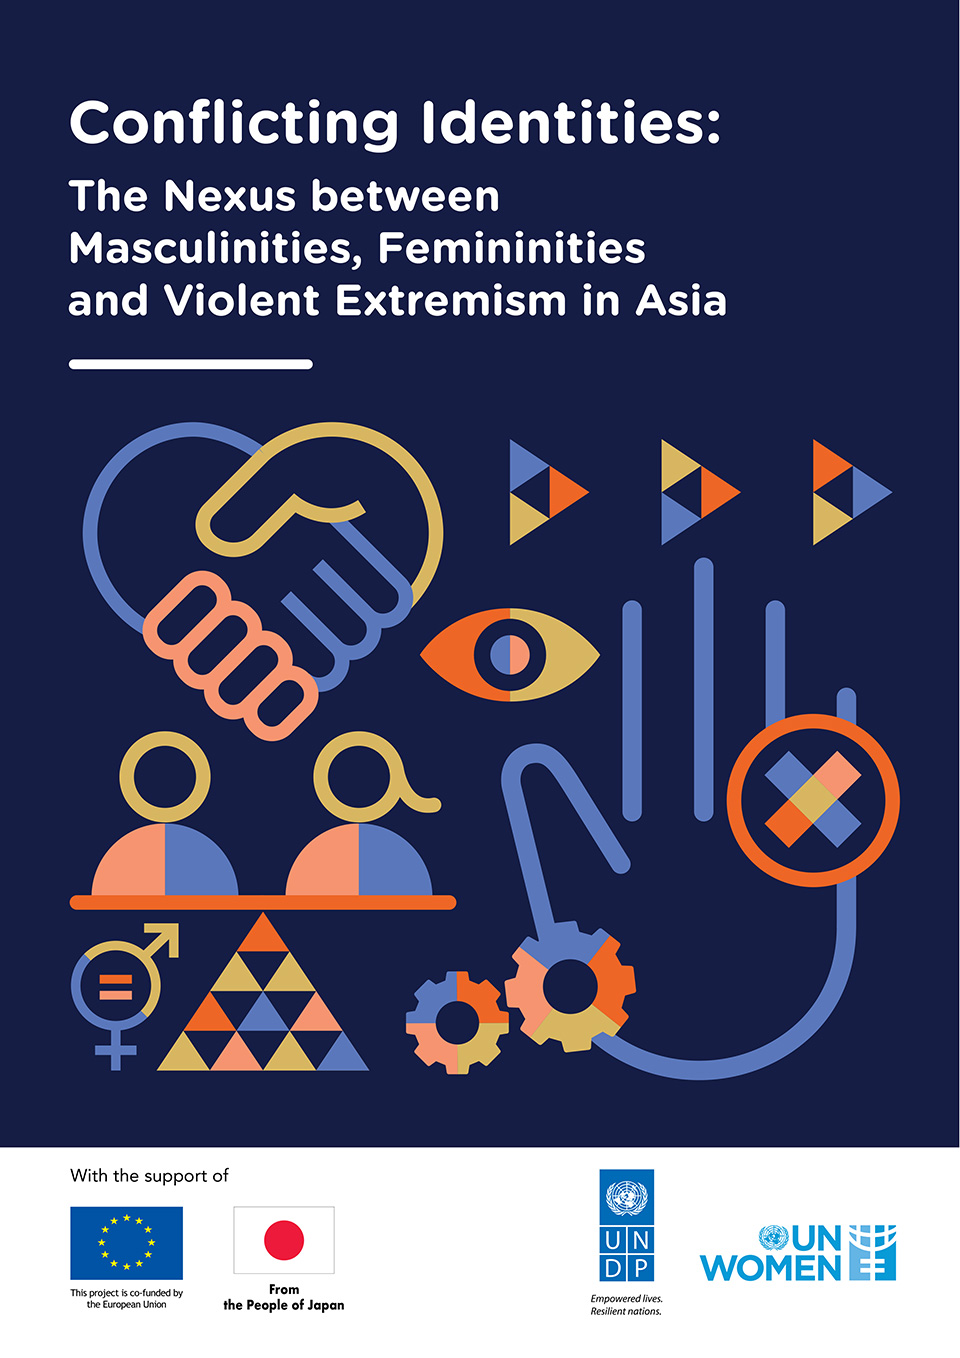 Conflicting Identities: The Nexus between Masculinities, Femininities and Violent Extremism in Asia